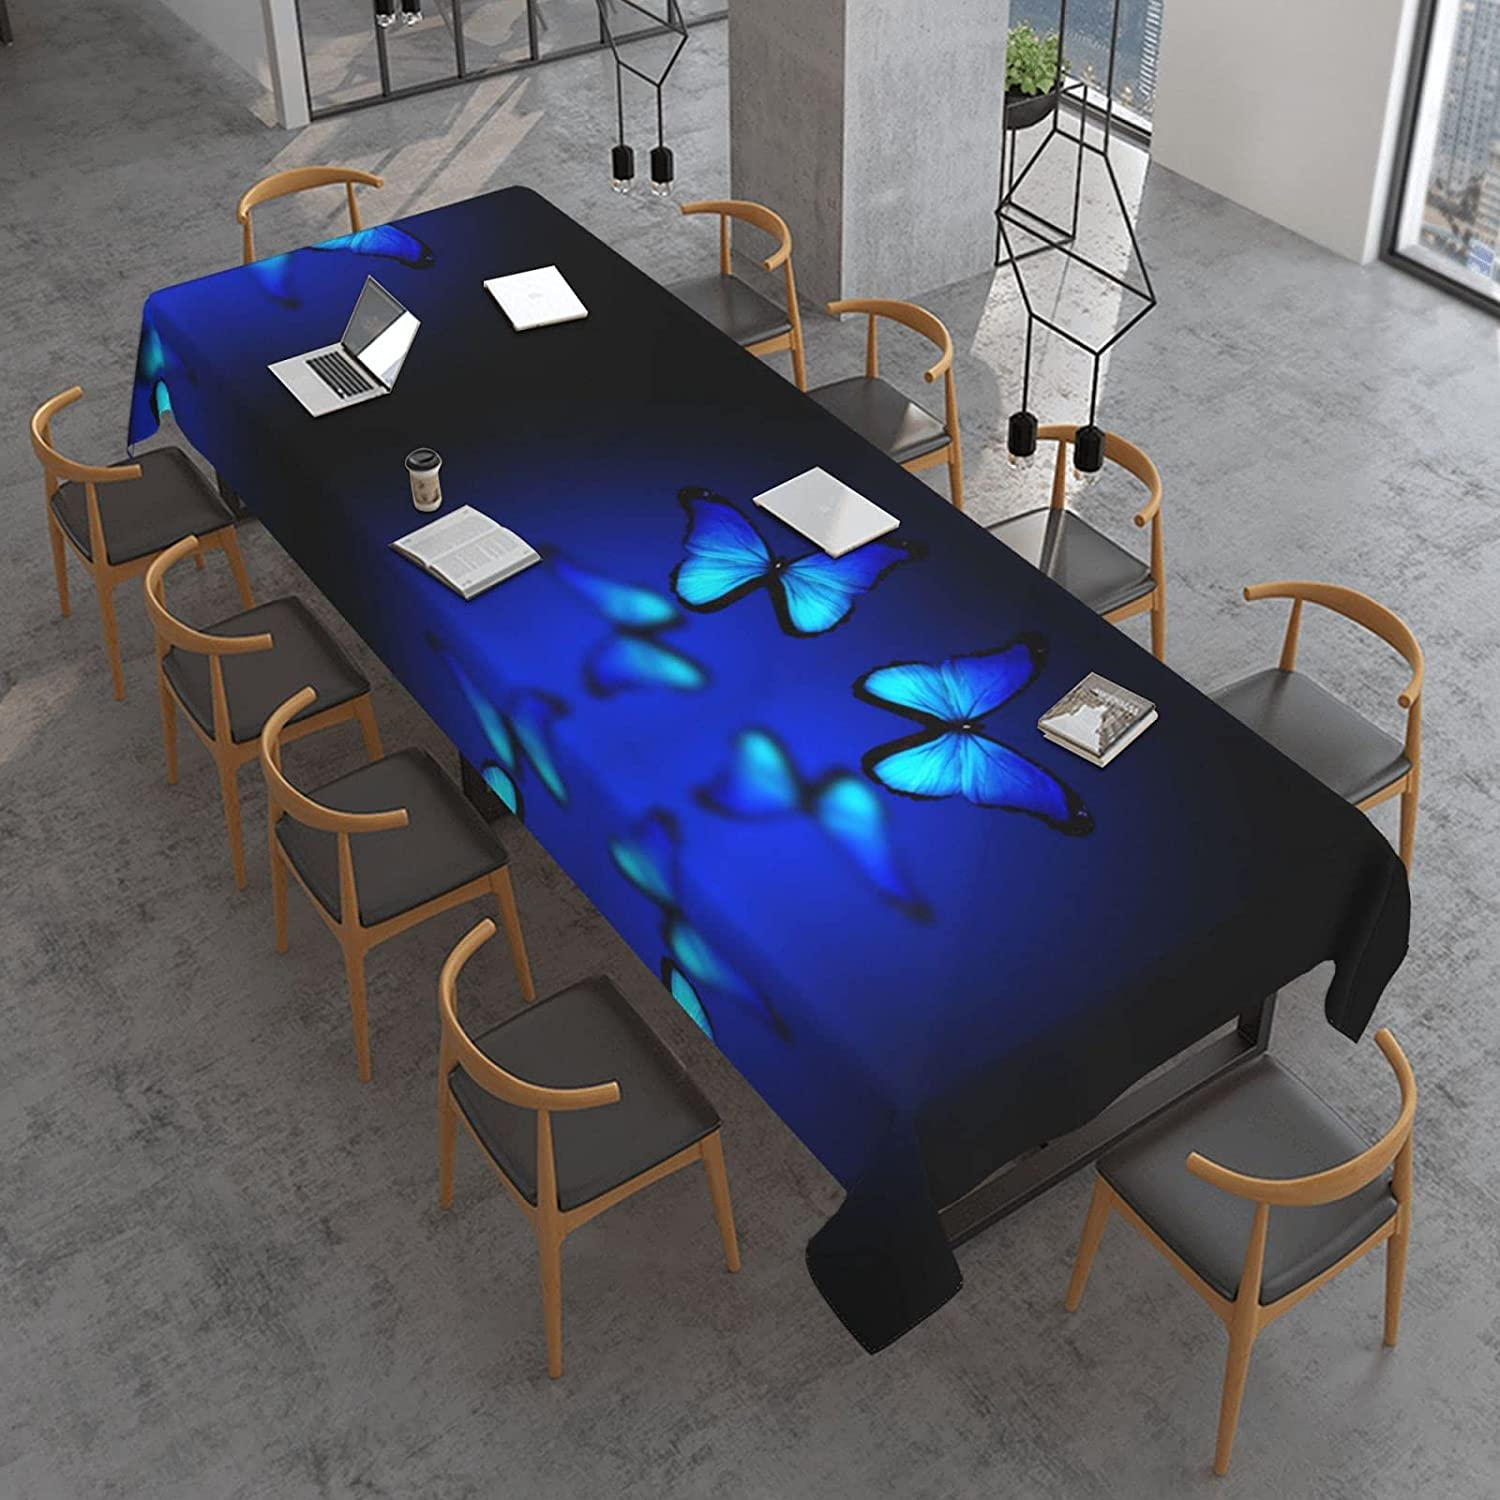 Blue Butterfly Print Rectangle Table Cloth 120 Inch X Over item handling 60 Water- Max 85% OFF